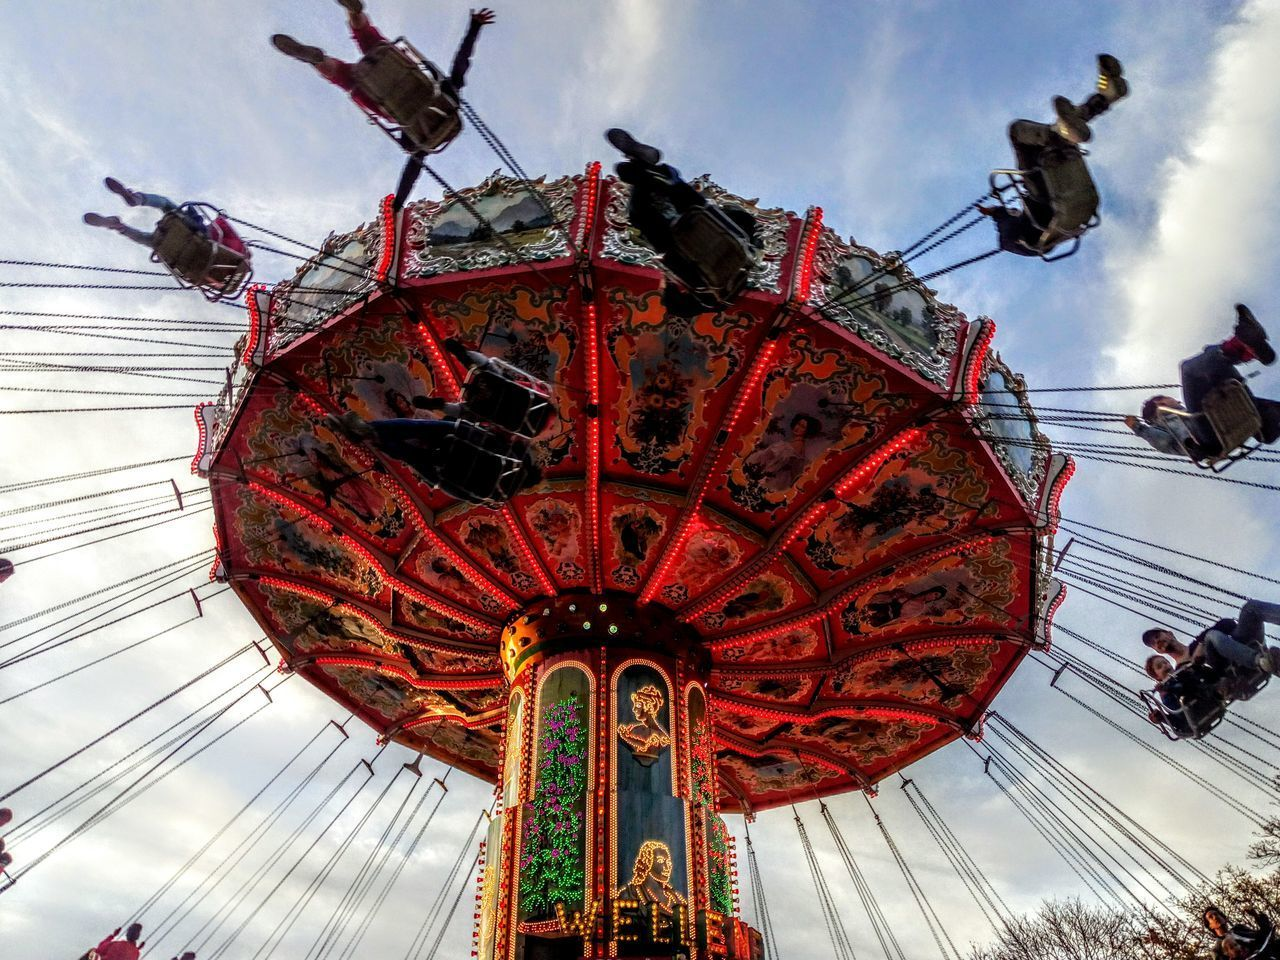 amusement park, amusement park ride, low angle view, arts culture and entertainment, chain swing ride, group of people, sky, cloud - sky, leisure activity, real people, fun, enjoyment, motion, day, nature, medium group of people, incidental people, men, spinning, outdoors, fairground